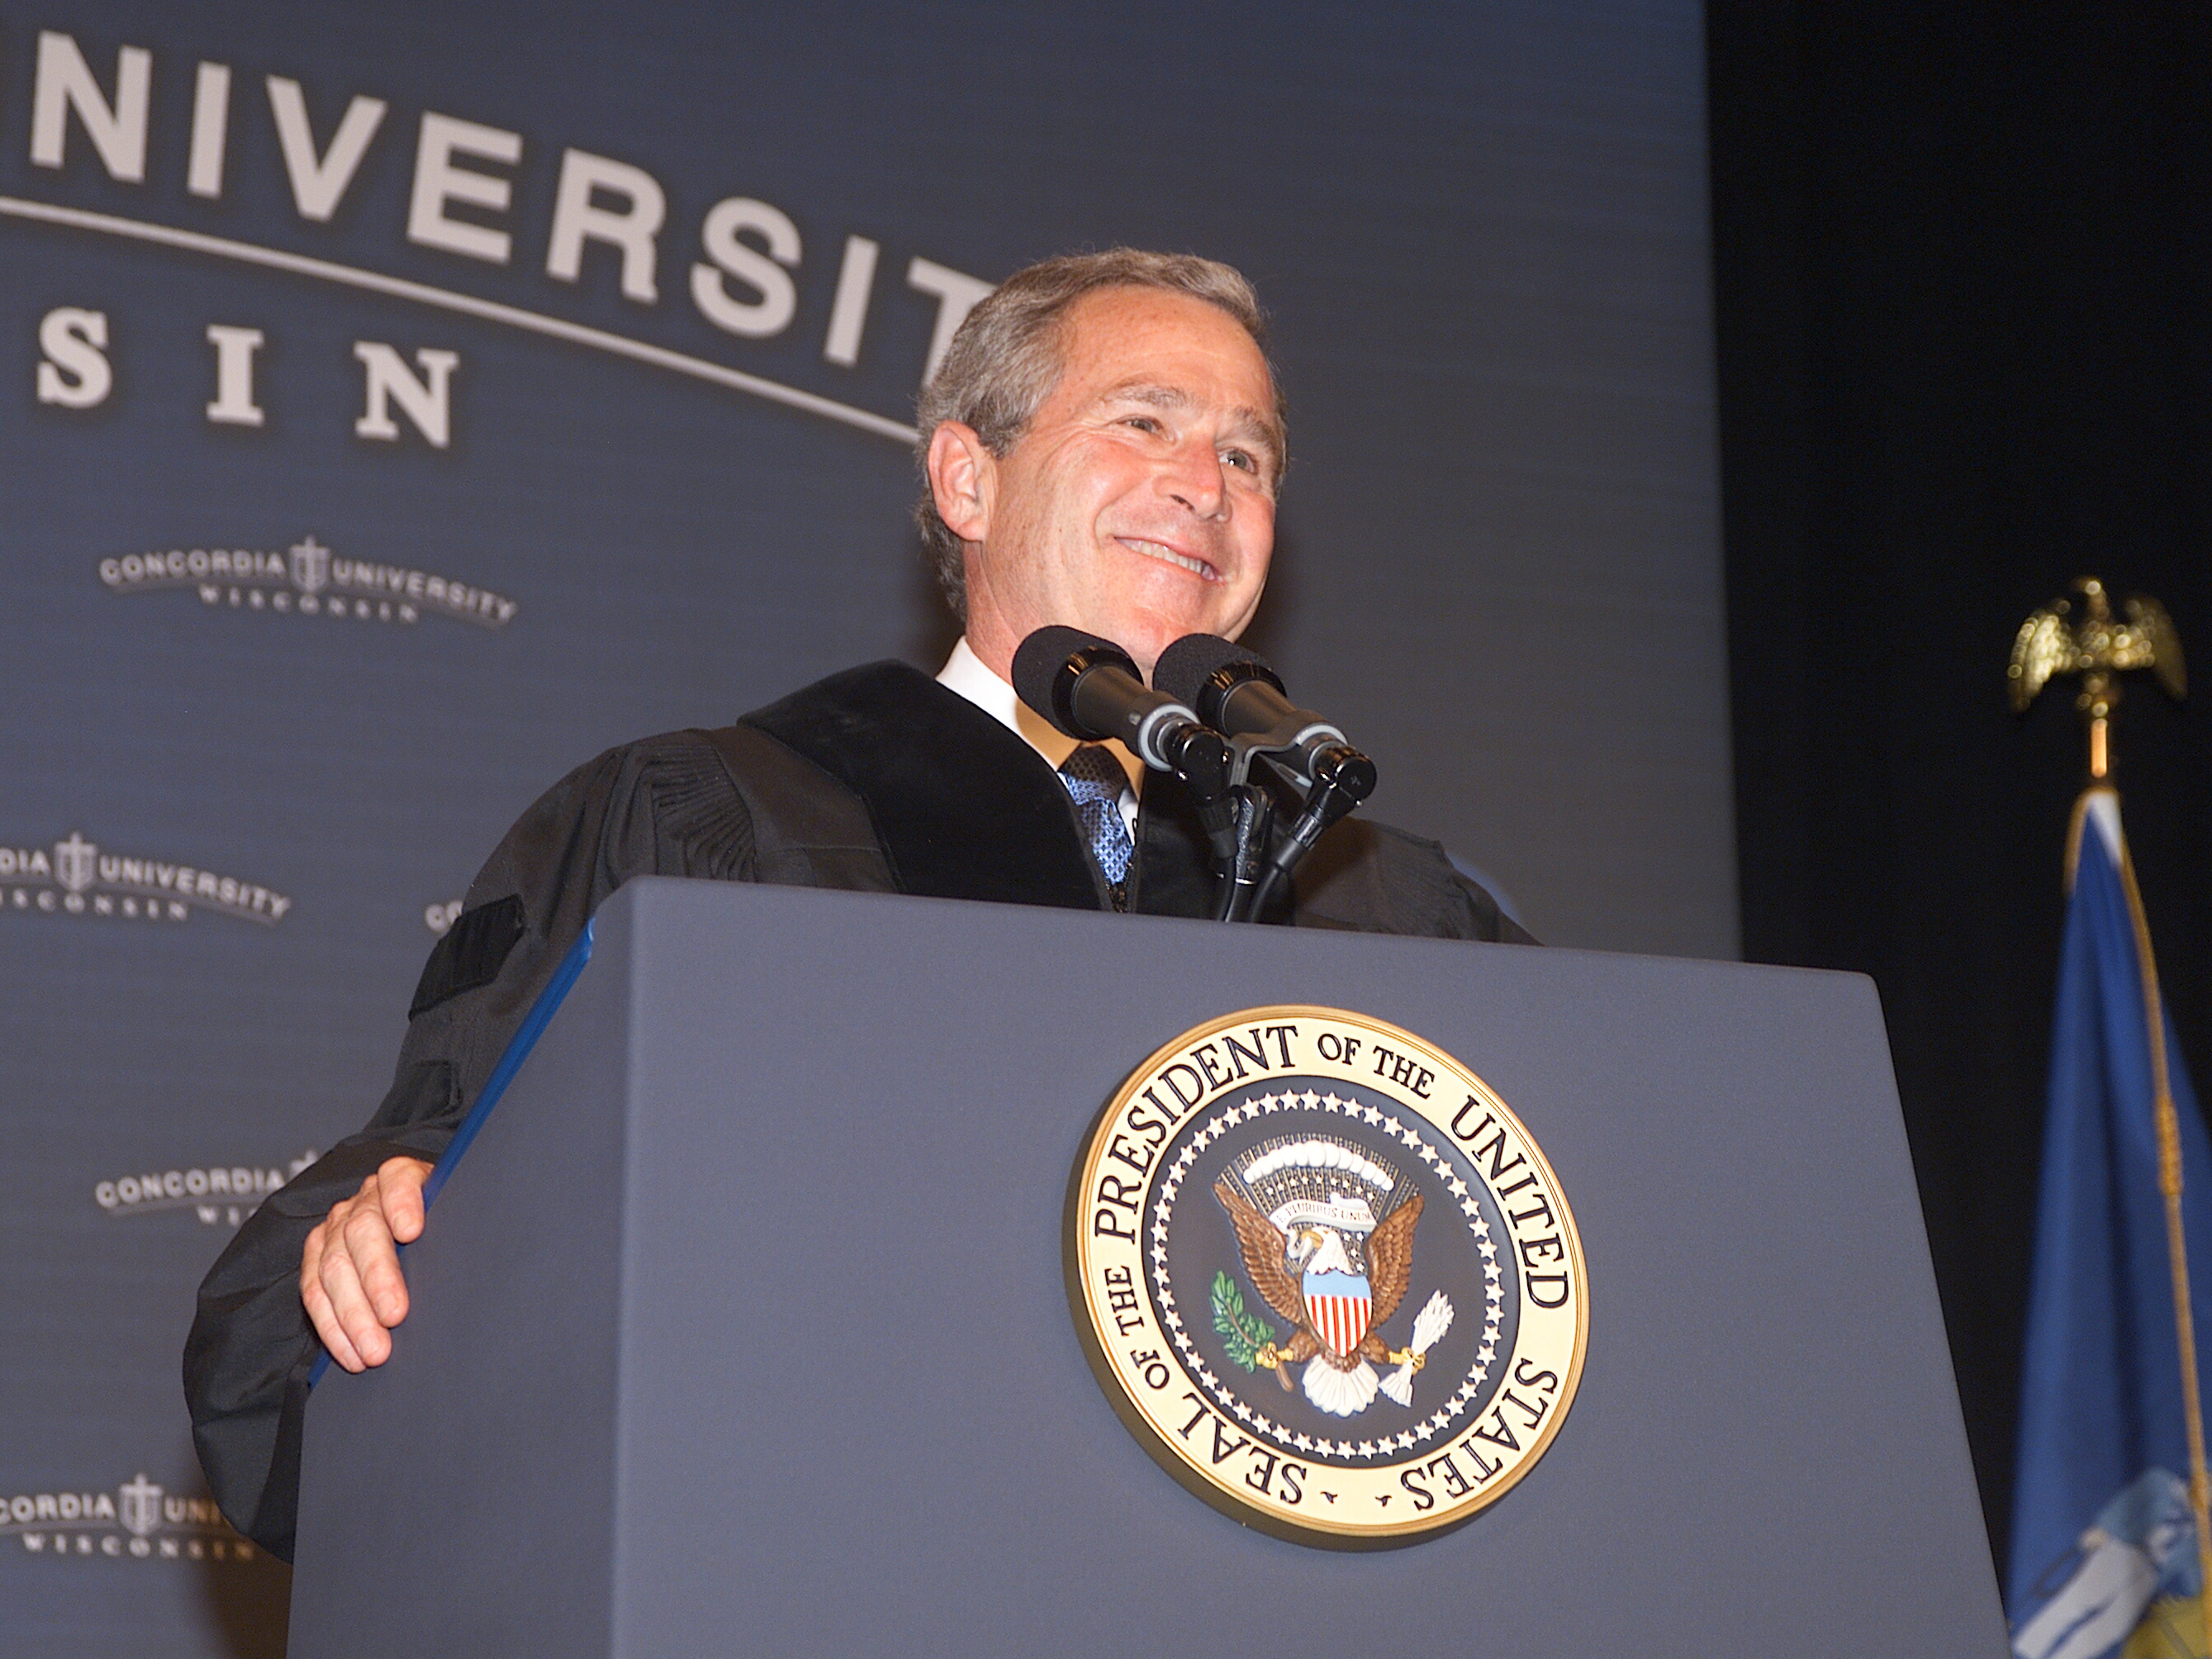 President George W. Bush speaks at Concordia's 2004 commencement ceremony.